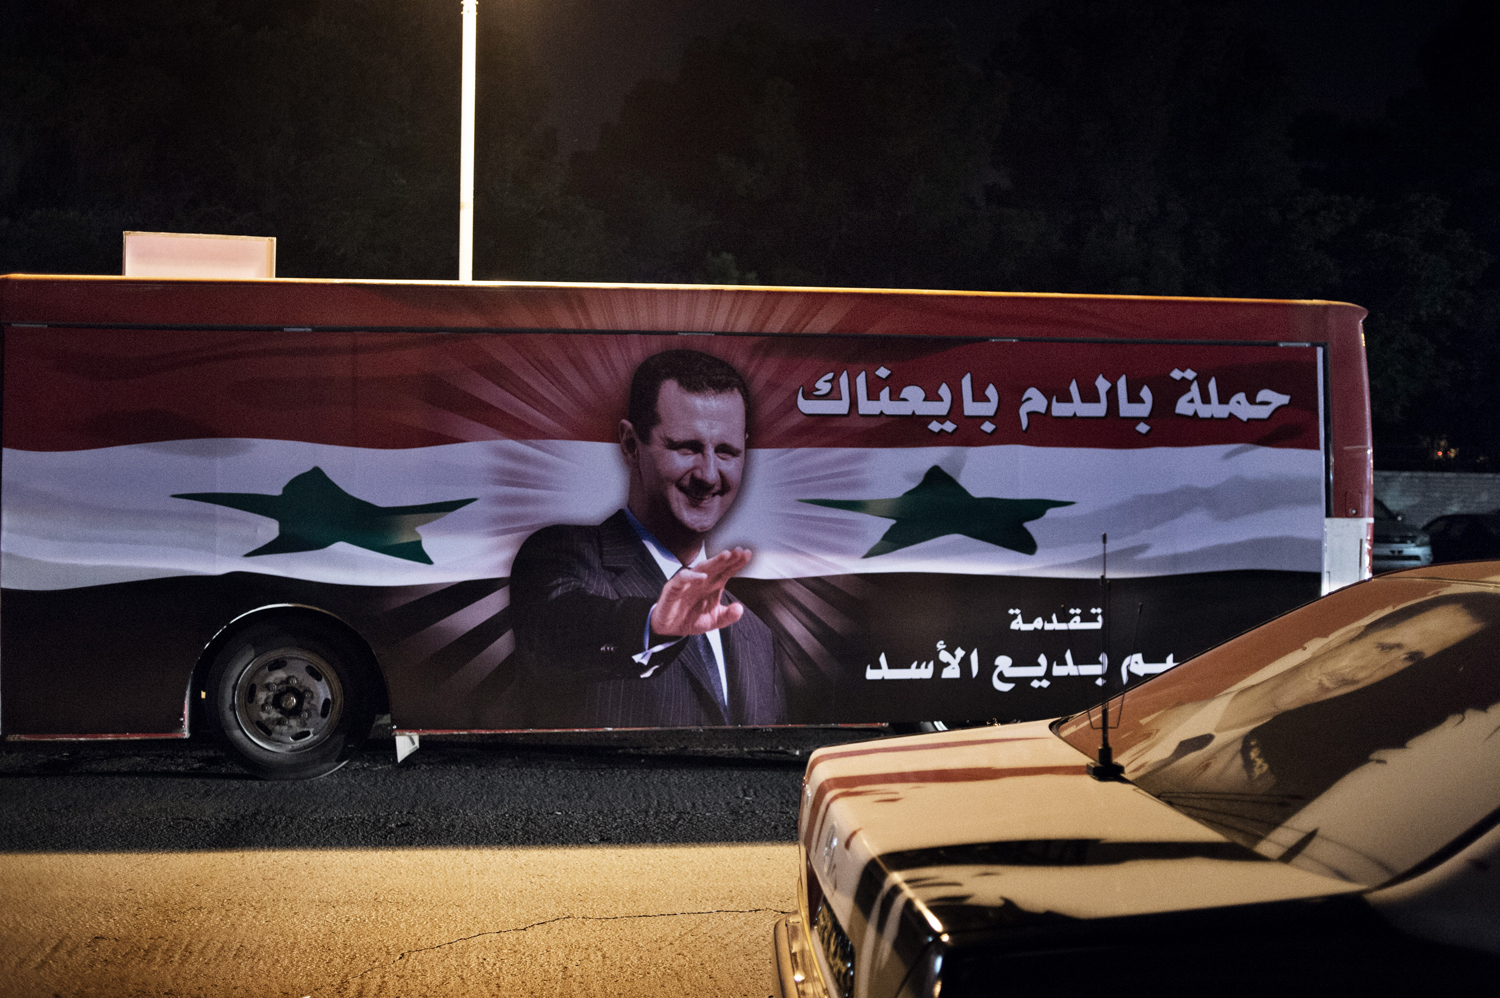 Buildings, checkpoints and vehicles in the capital are festooned with fresh portraits of Assad ahead of the elections. May 16, 2014.